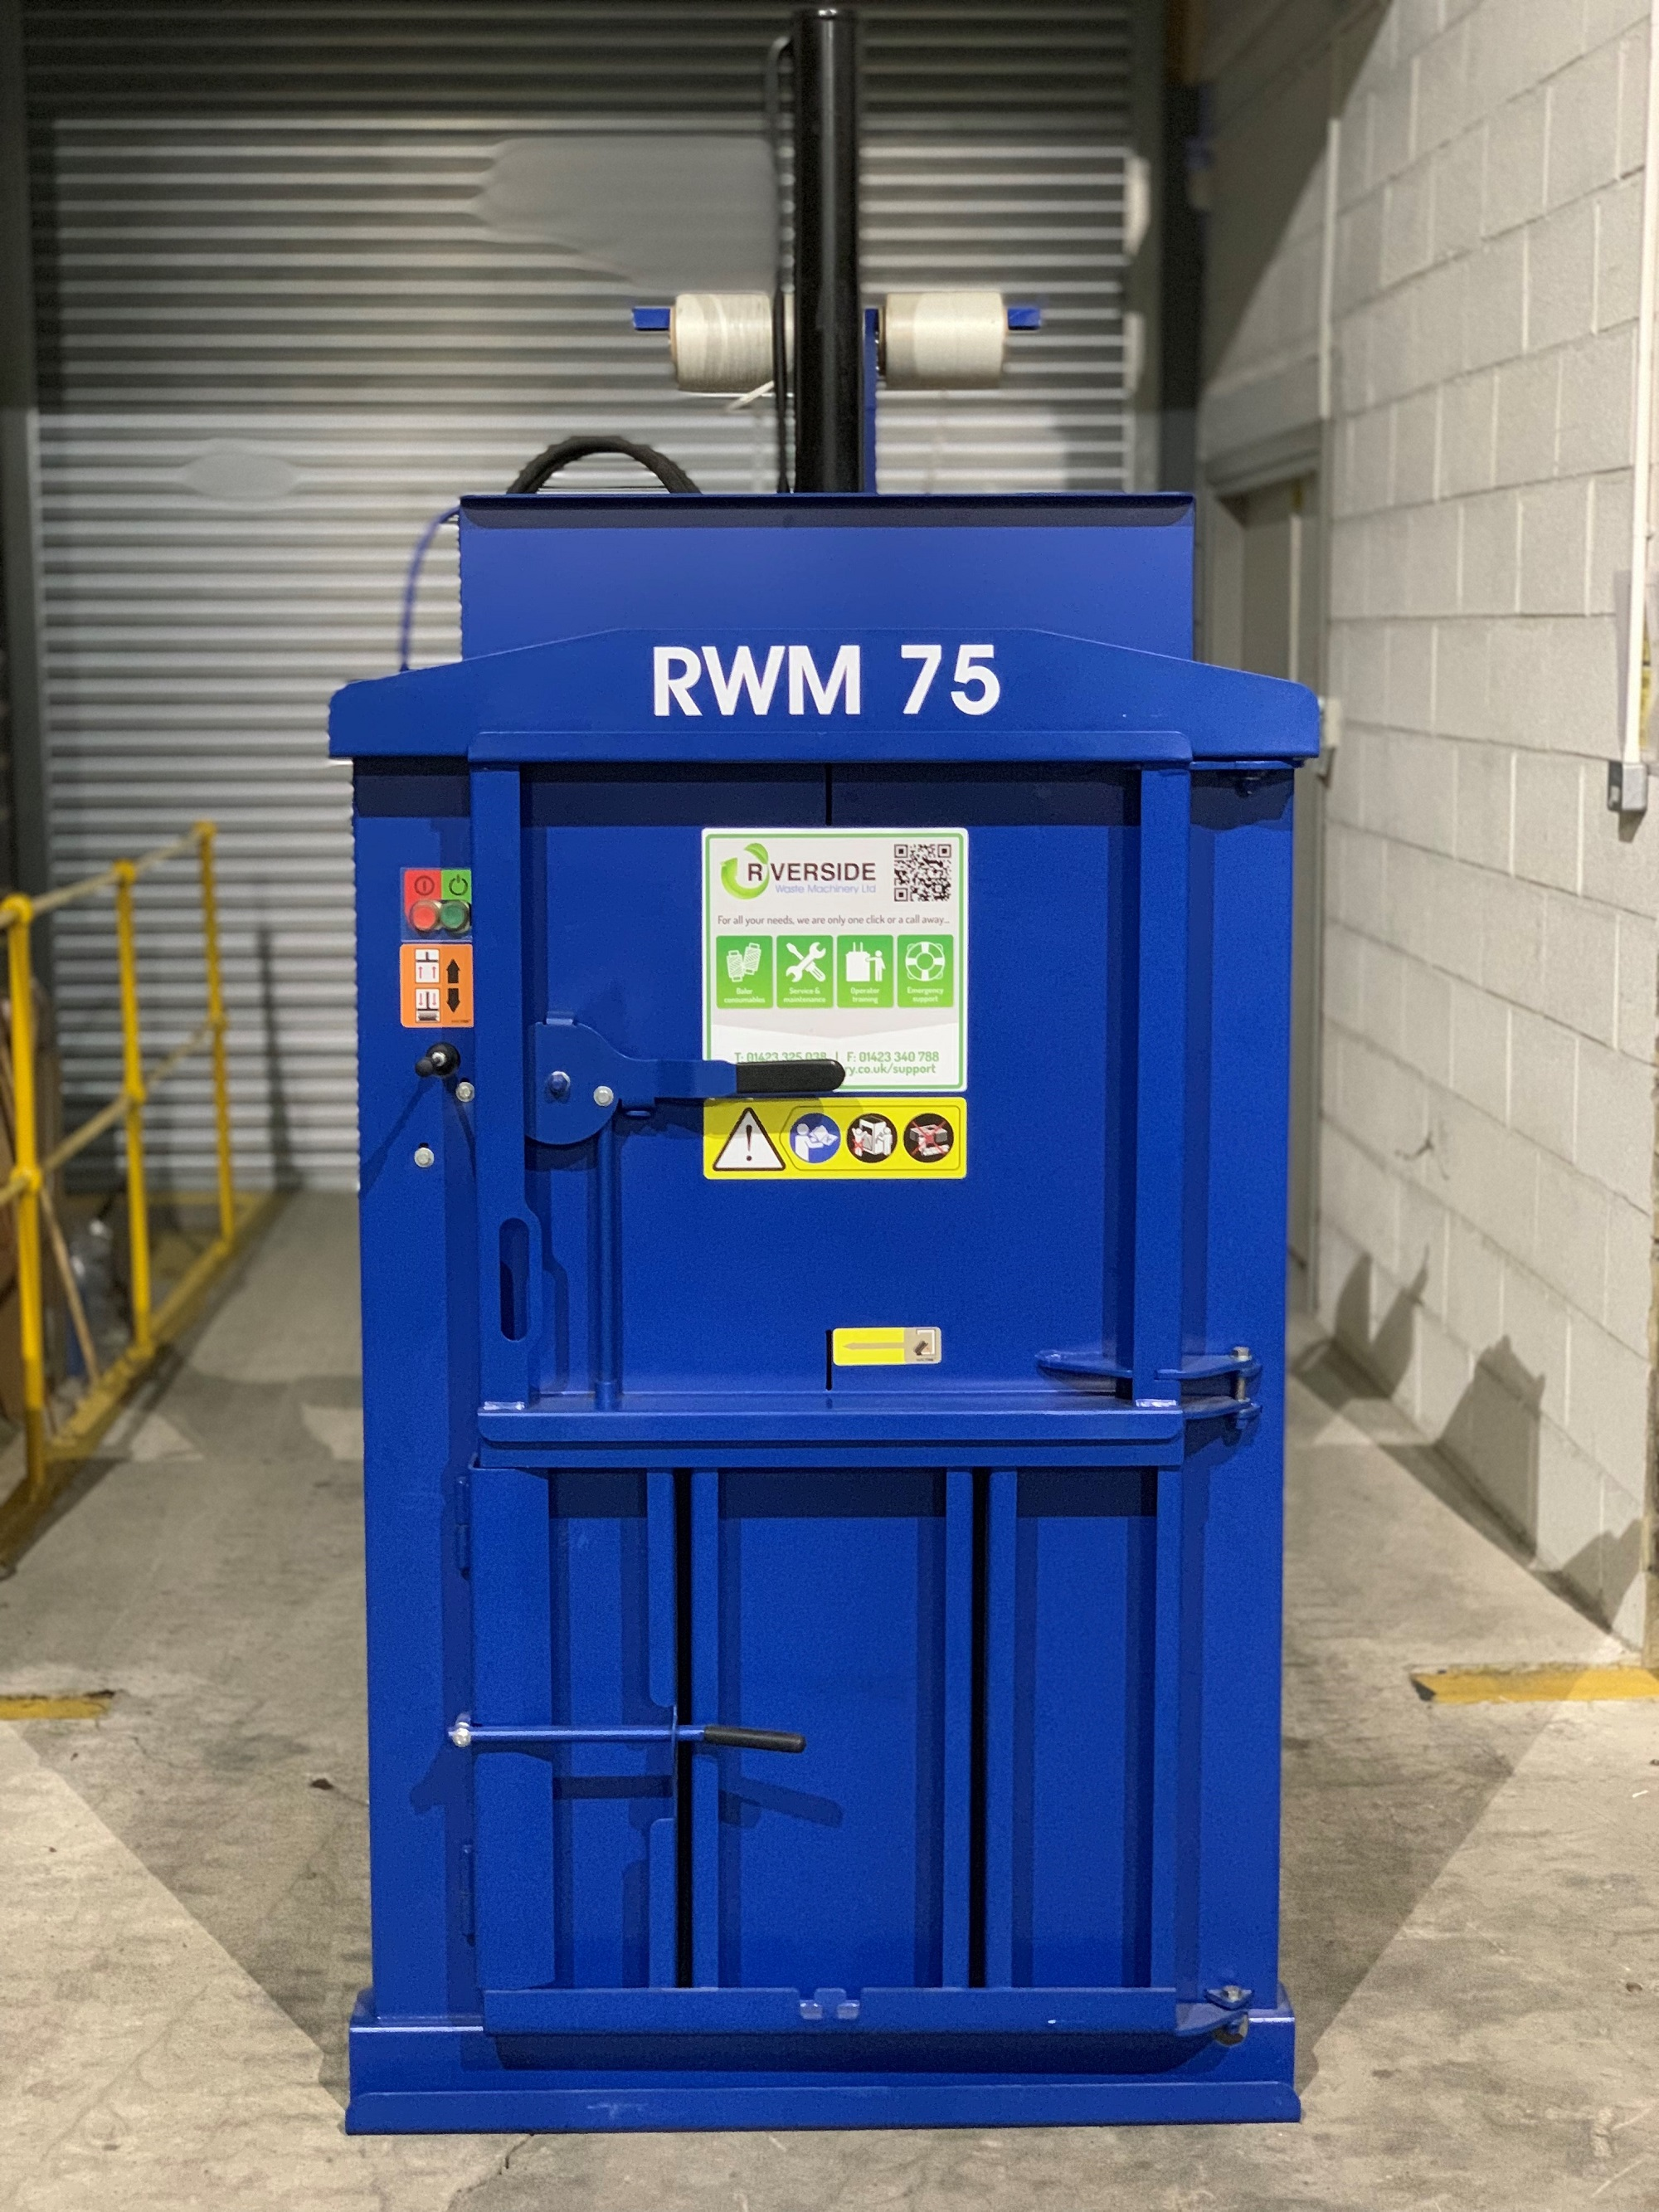 Excellent condition compact waste baler (RWM75)